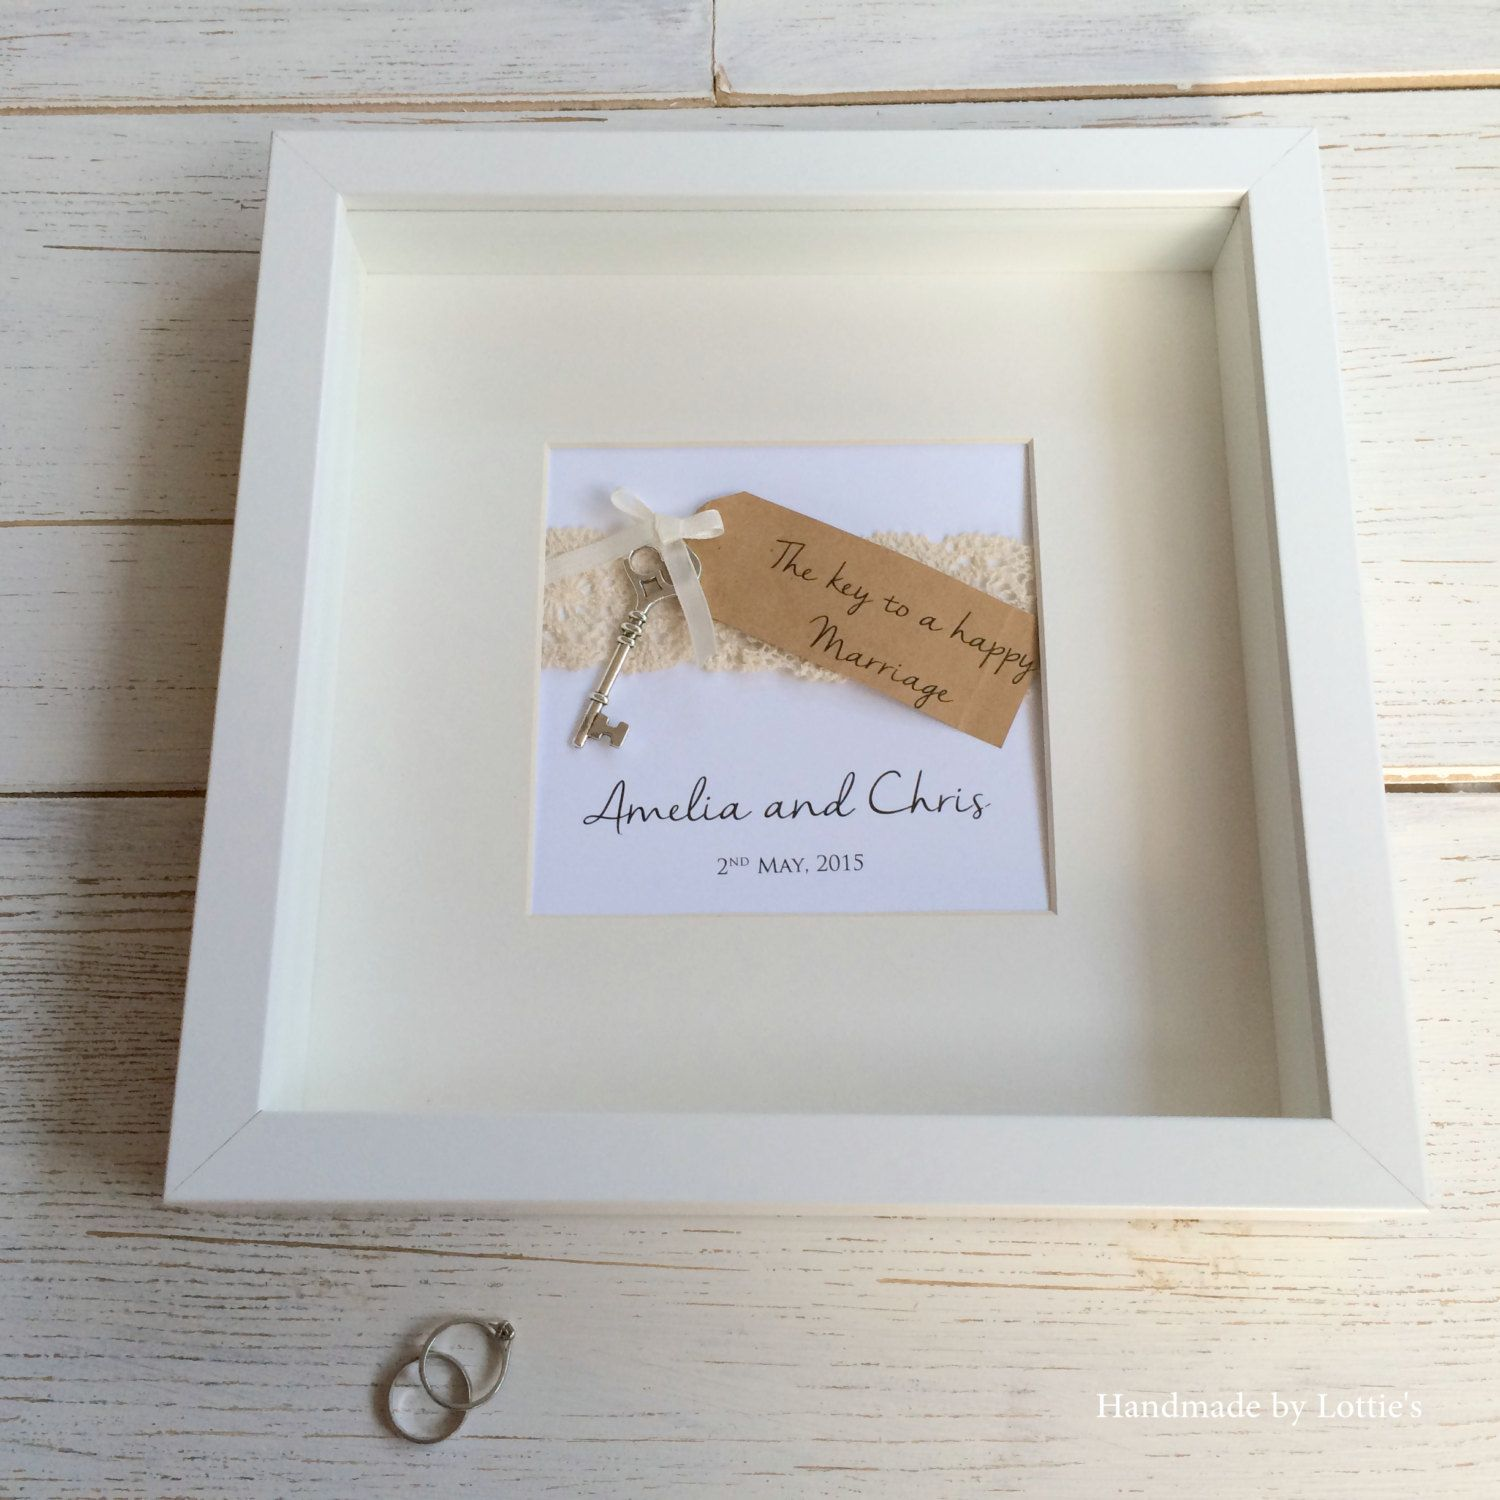 Unique wedding gift handmade wedding picture for Handmade wall frames ideas